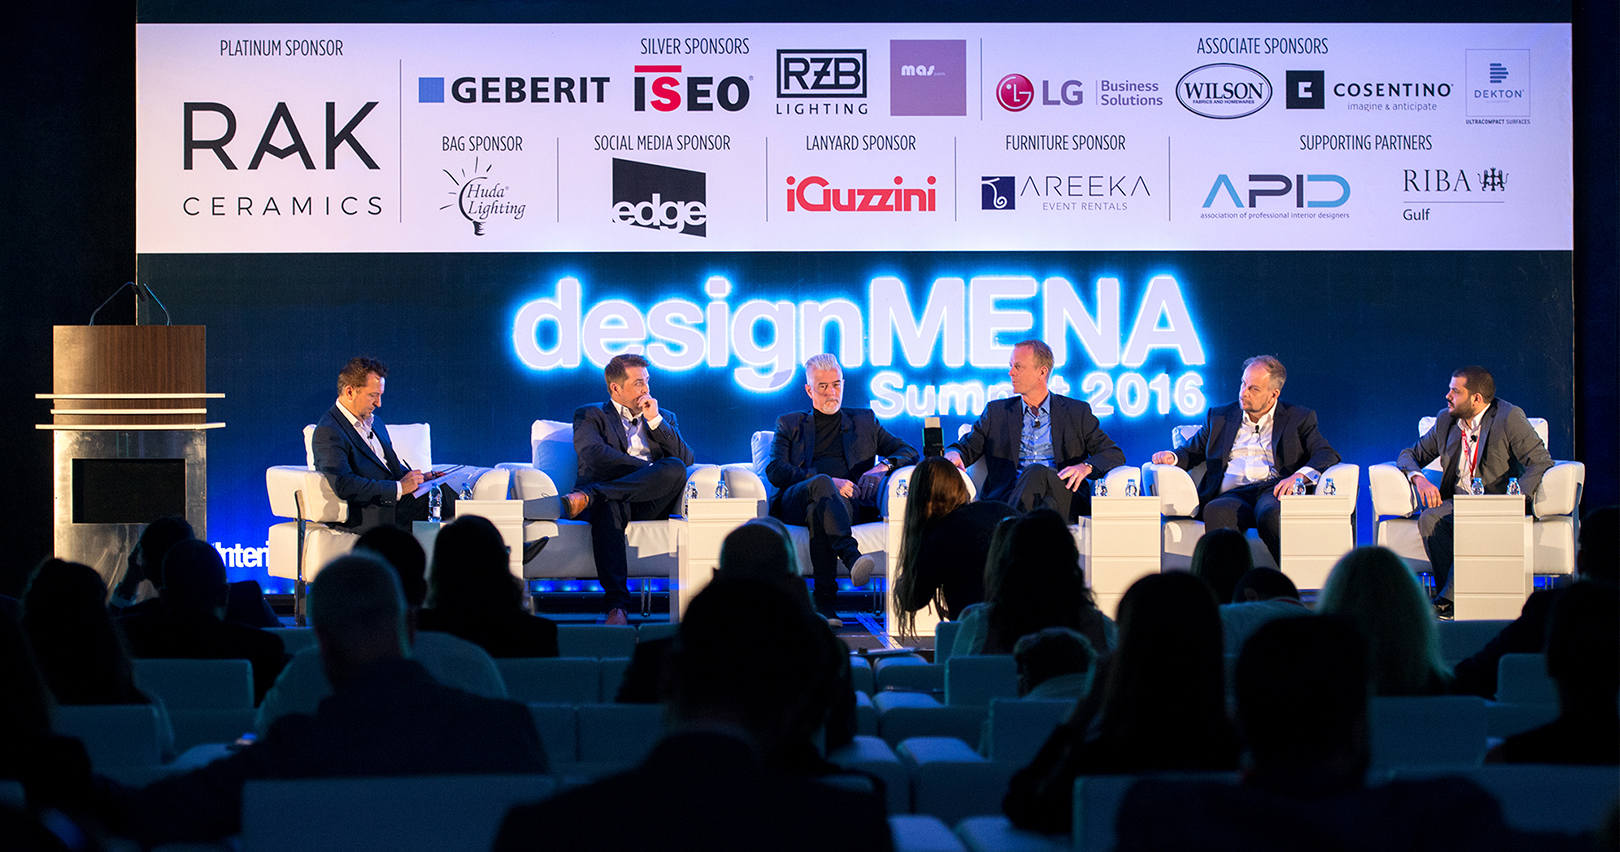 RAK Ceramics Supports Design MENA Summit